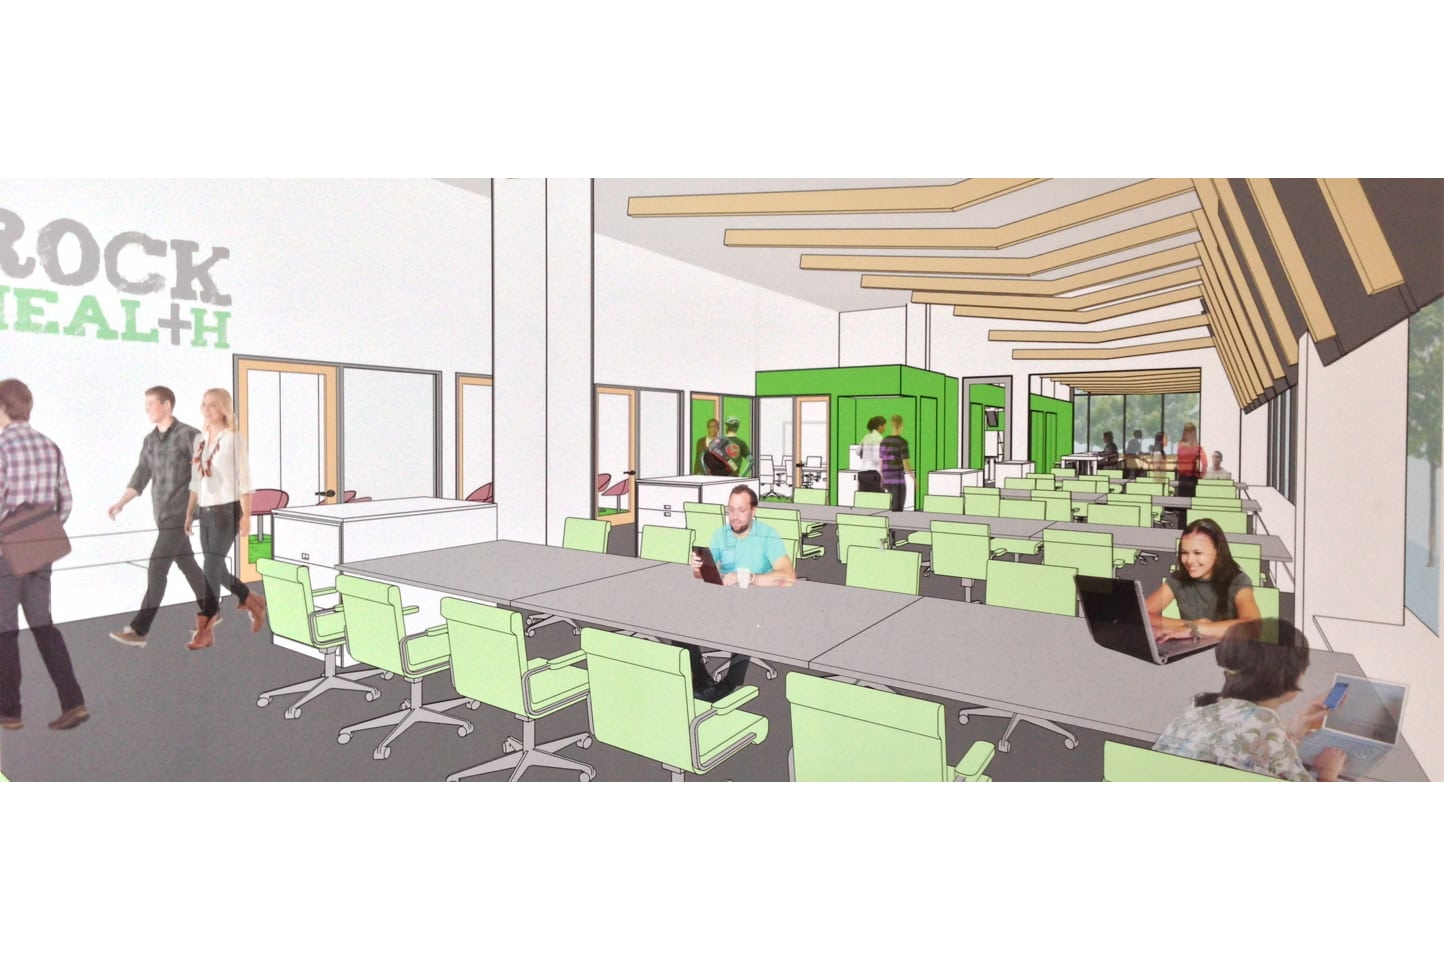 An architect's rendering of Rock Health's new office space at 455 Mission Bay Boulevard, to be occupied this December.